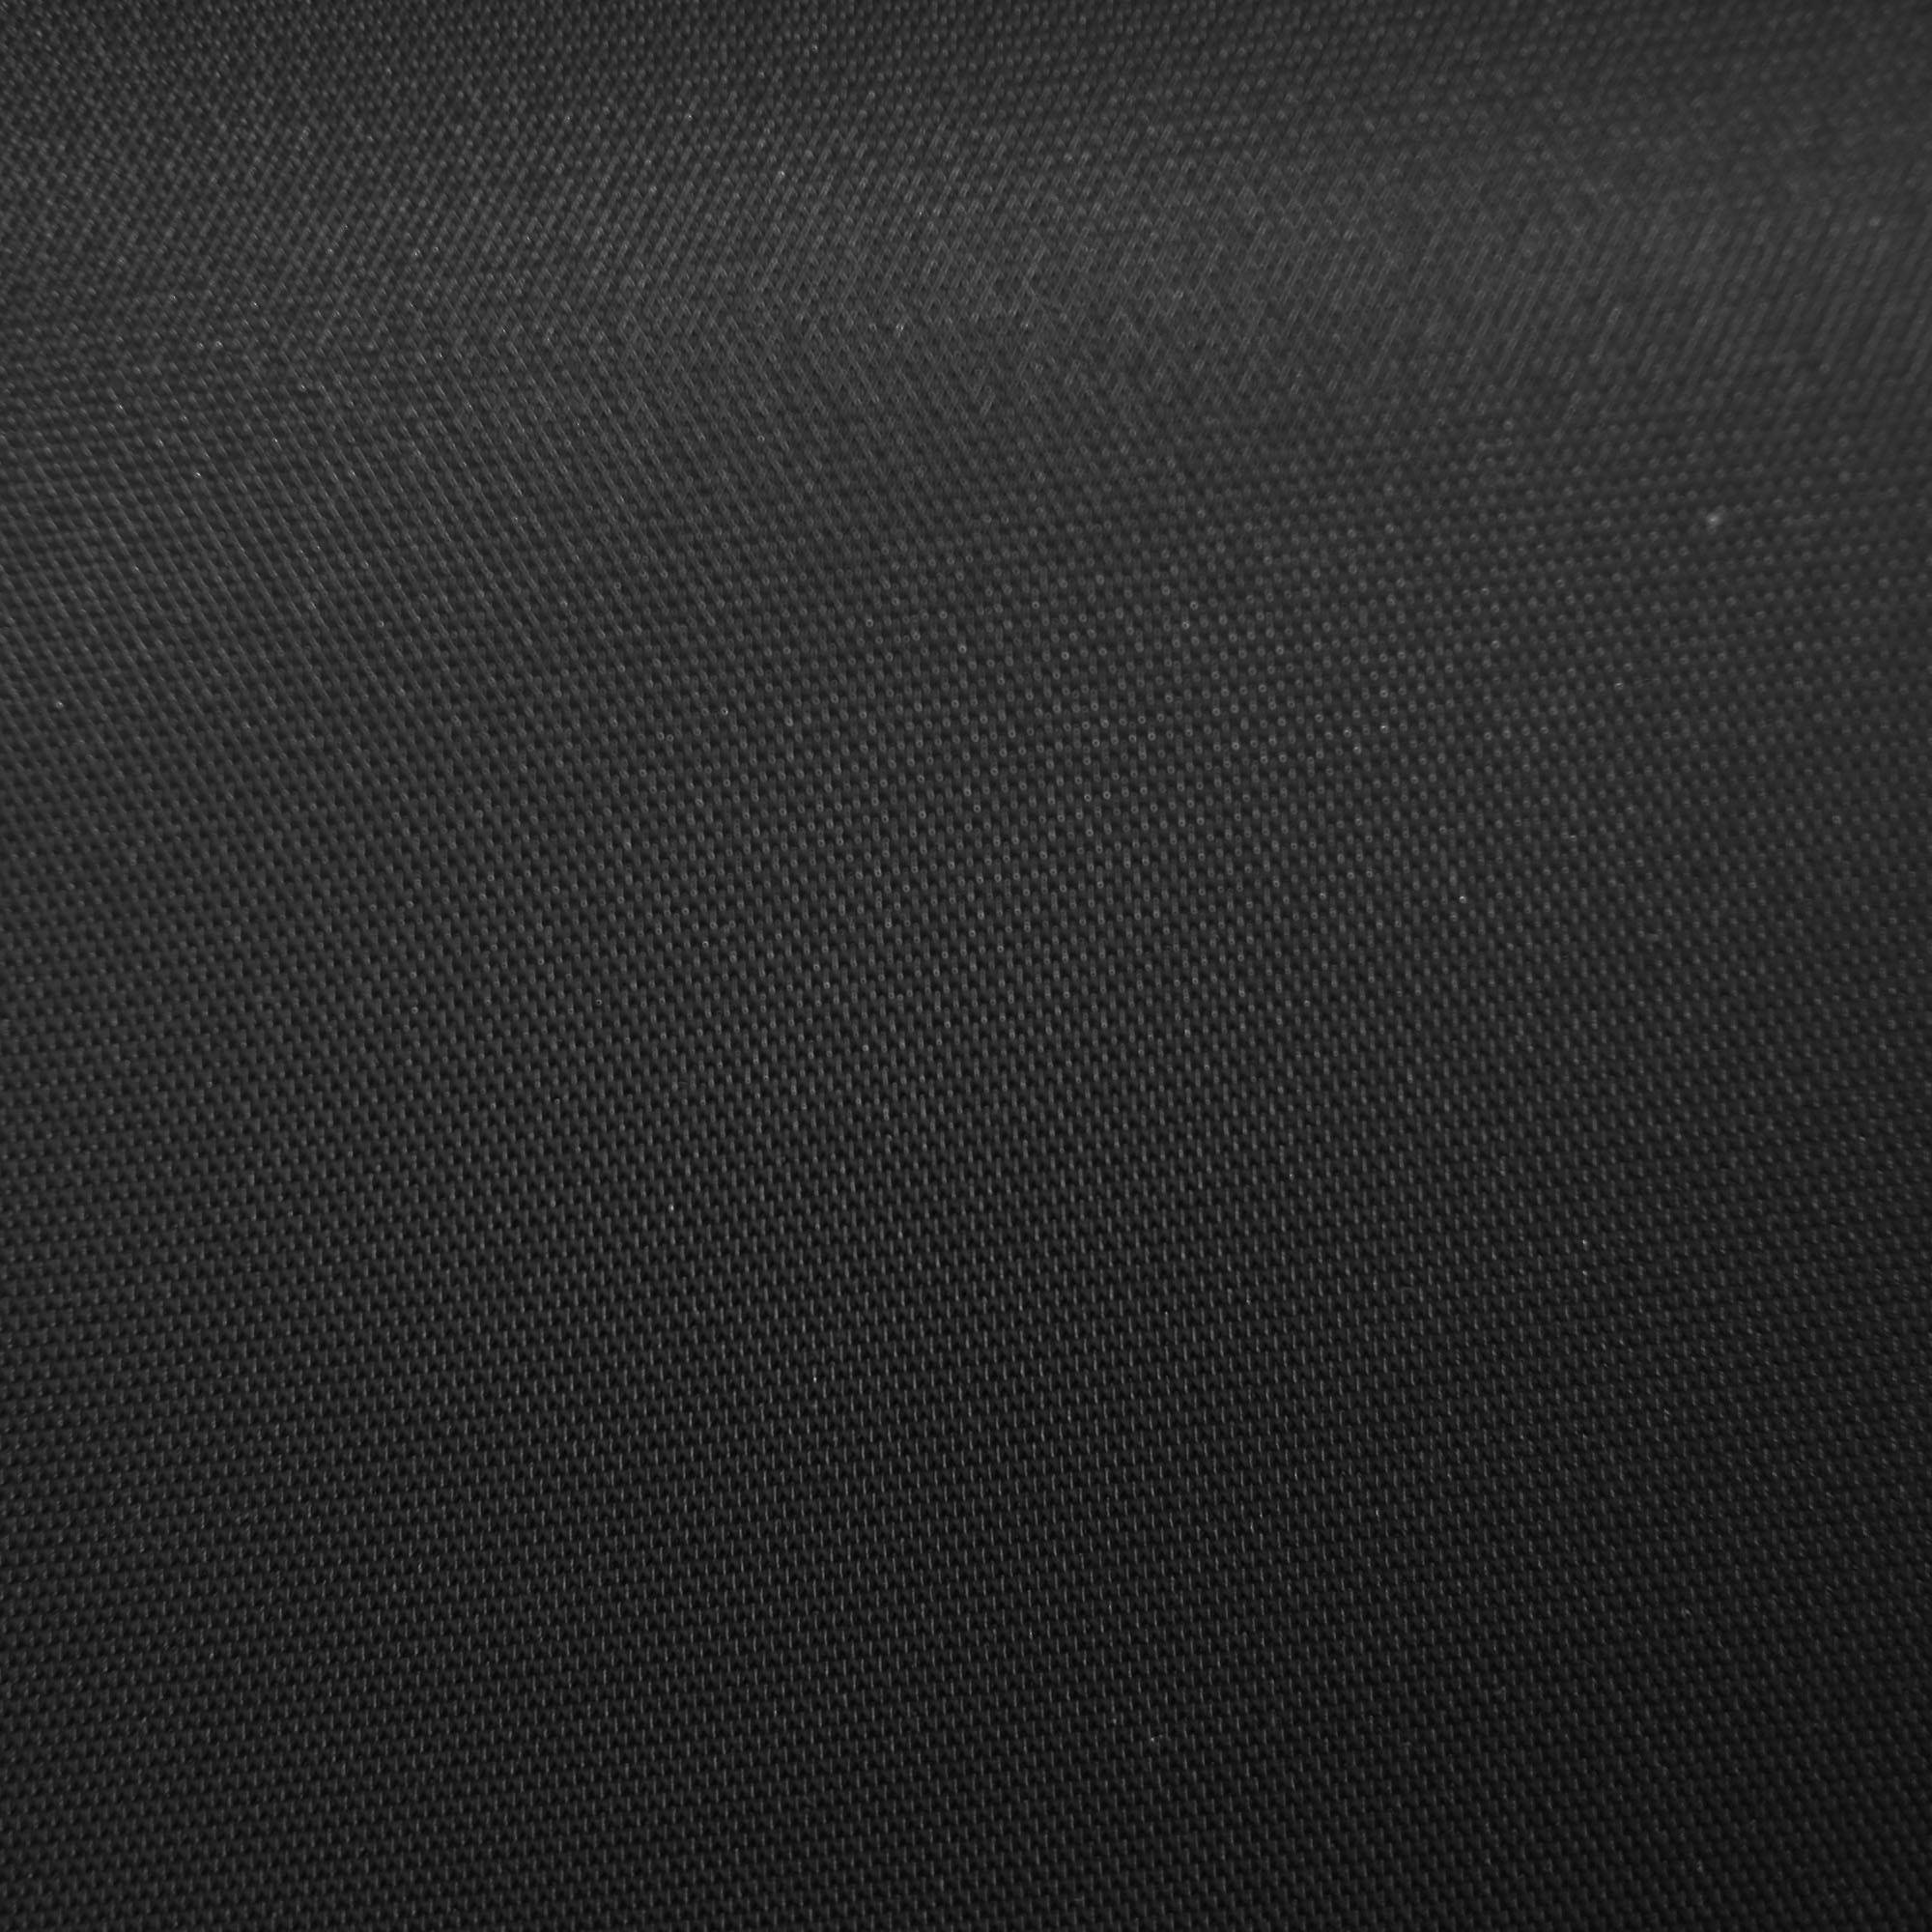 Savage Infinity Vinyl Background 9 X 20 Matte Black